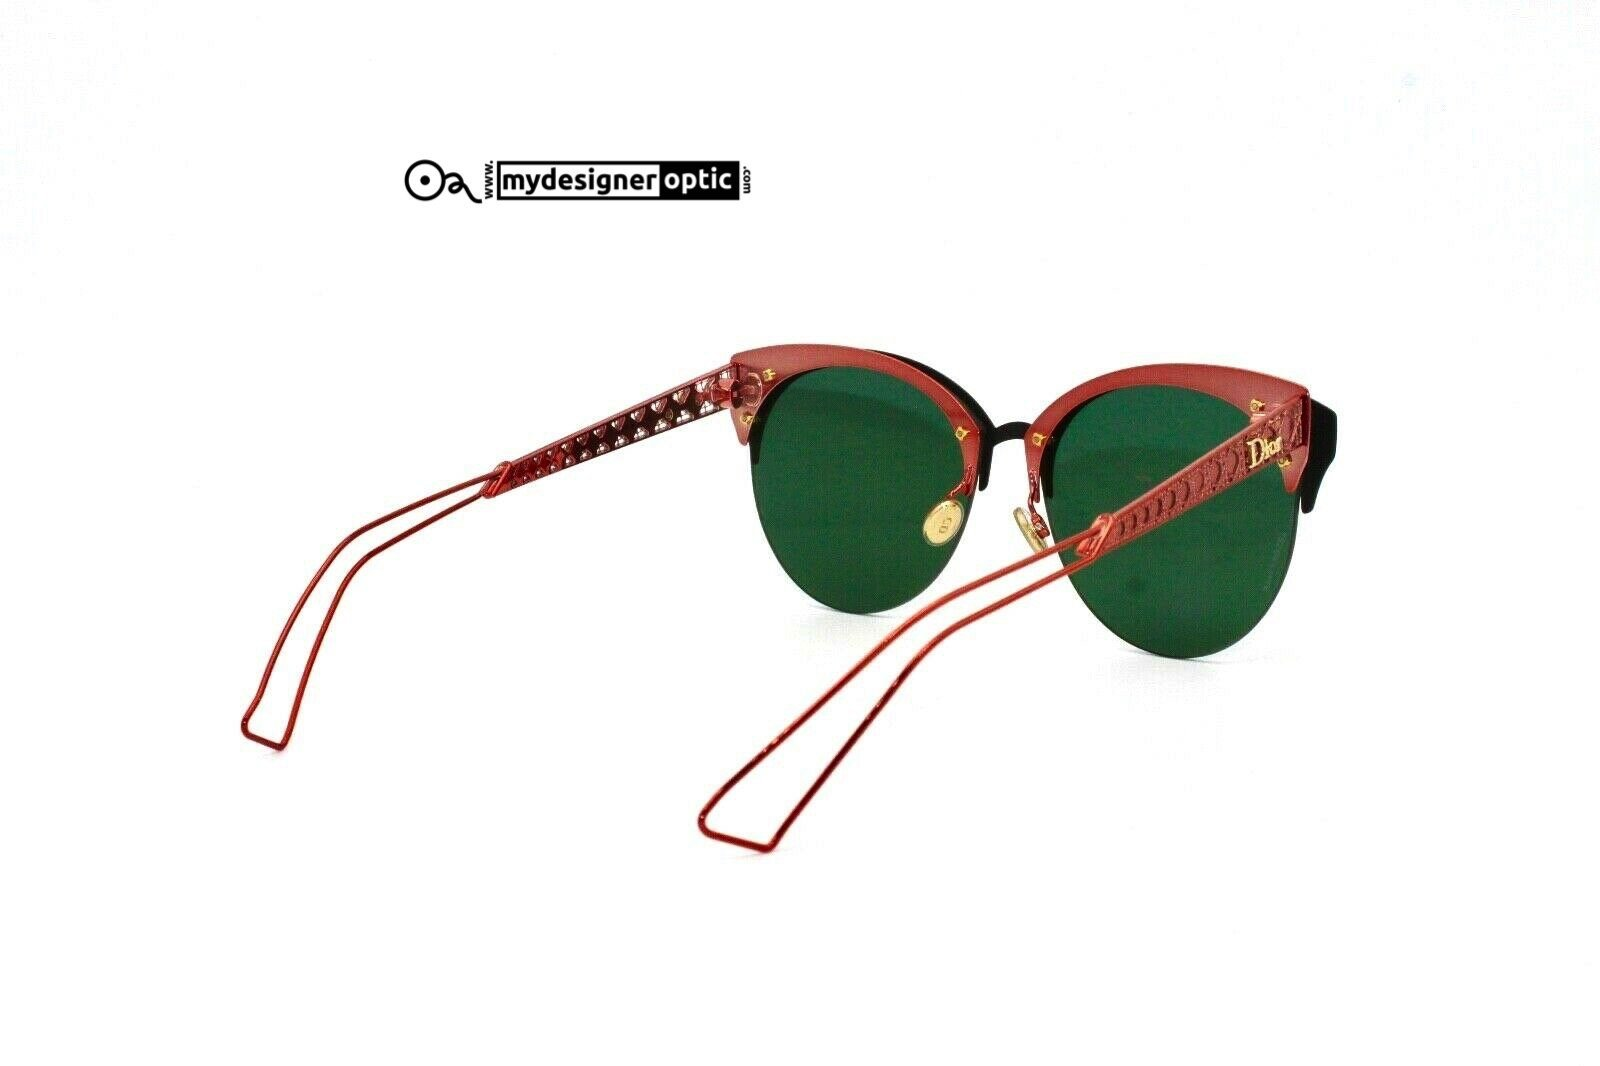 Christian Dior Sunglasses Diorama Club Made in Italy EYEMAP 55-18-150 - Mydesigneroptic